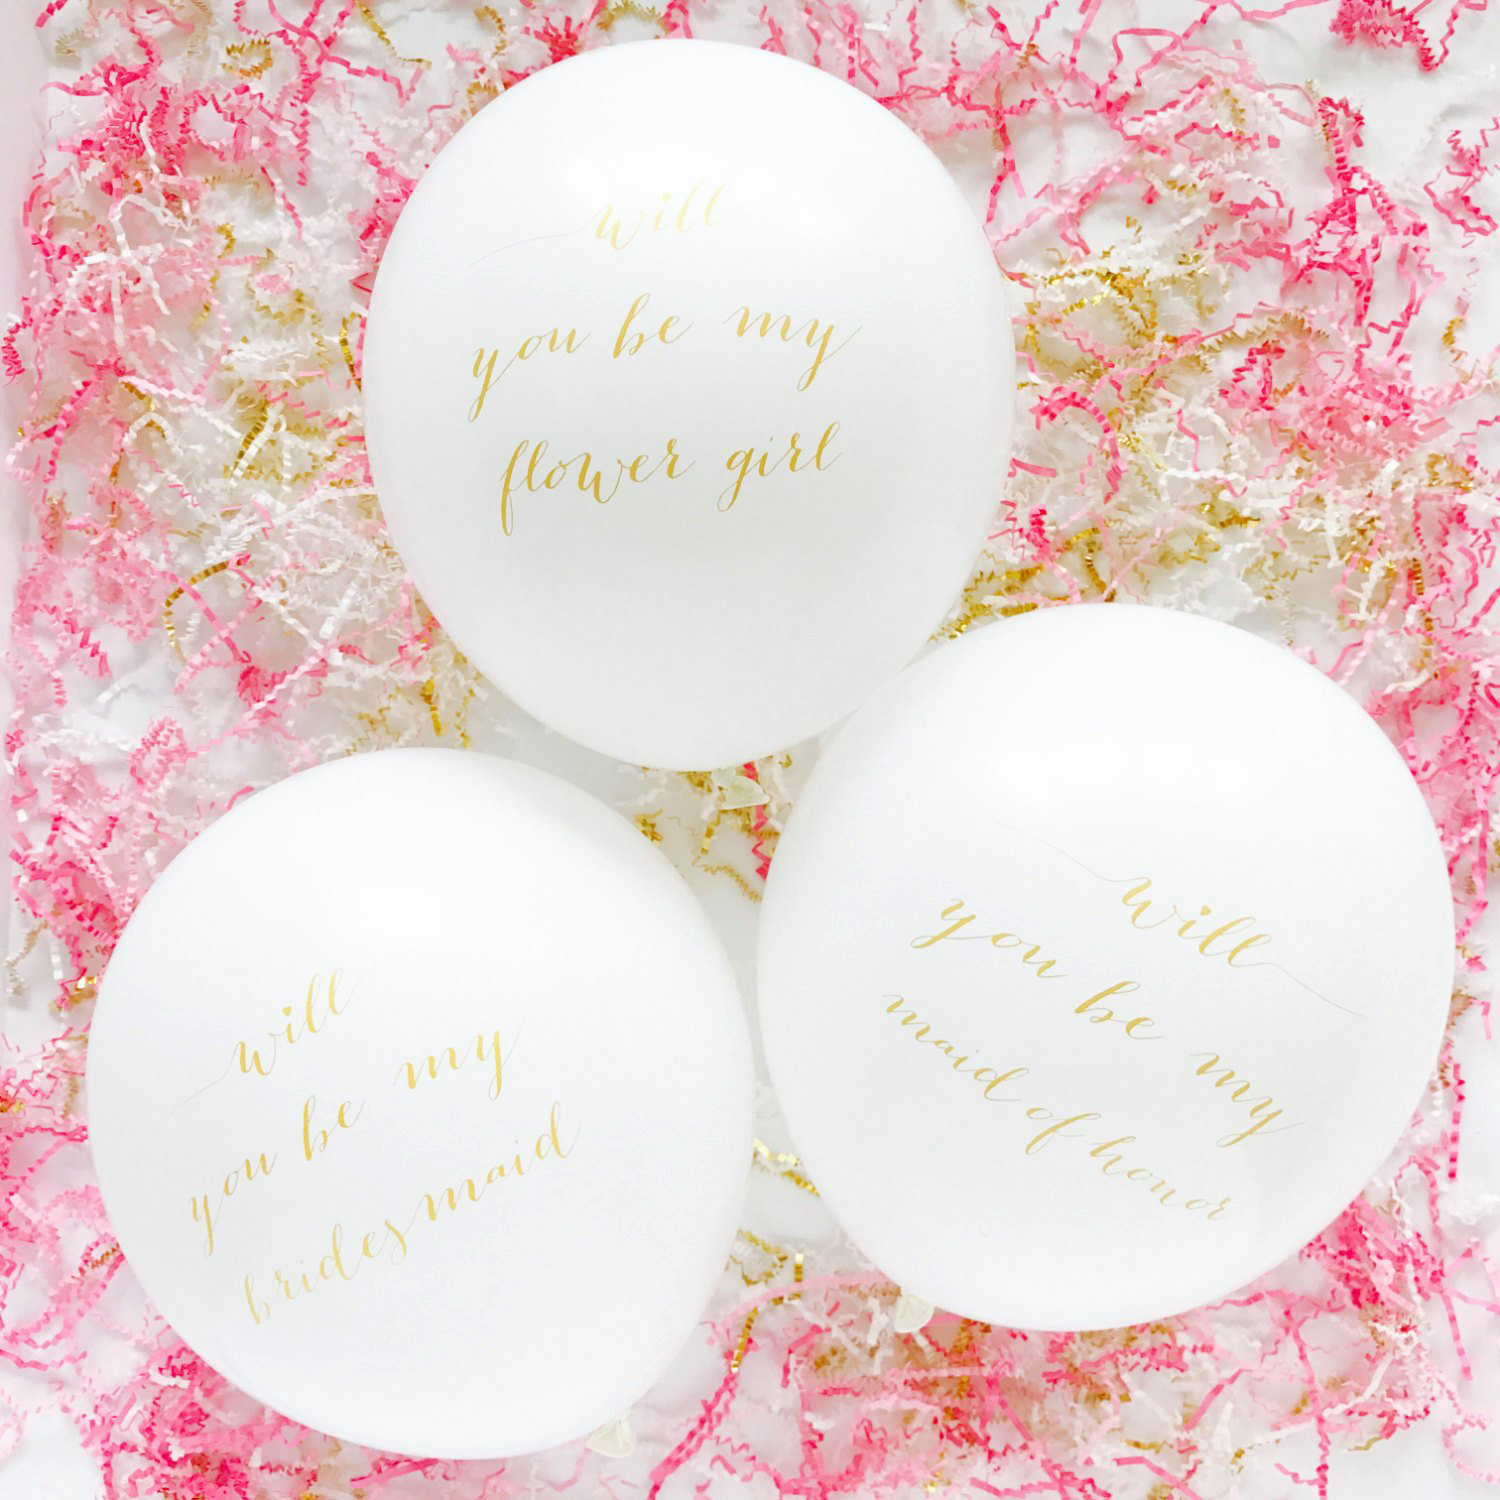 maid of honor proposal balloons with gold calligraphy